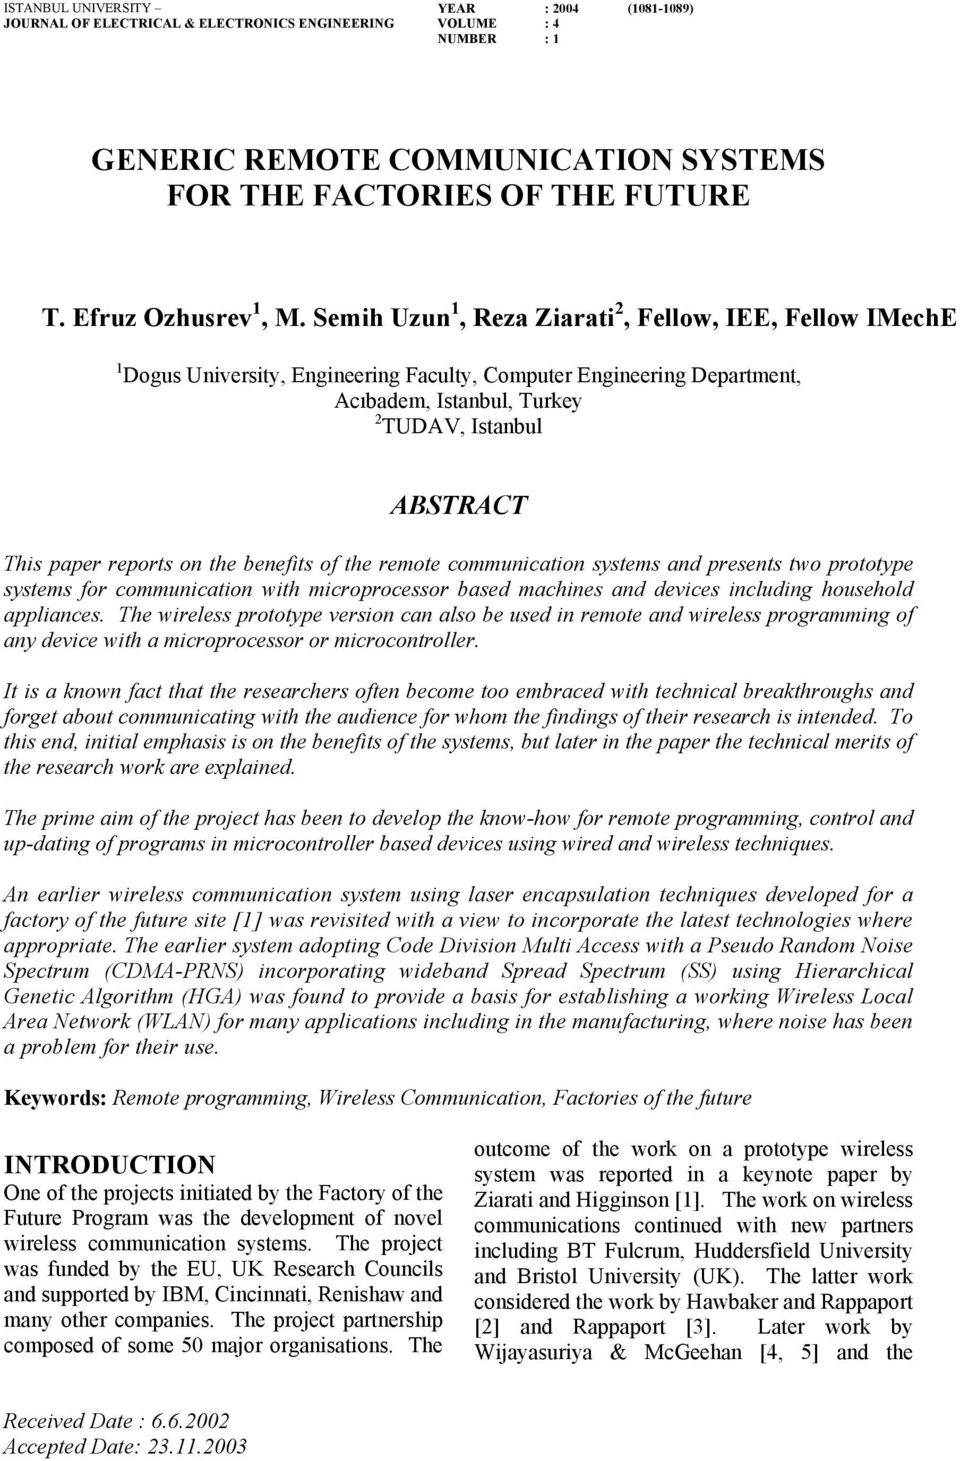 Semih Uzun 1, Reza Ziarati 2, Fellow, IEE, Fellow IMechE 1 Dogus University, Engineering Faculty, Computer Engineering Department, Acıbadem, Istanbul, Turkey 2 TUDAV, Istanbul ABSTRACT This paper